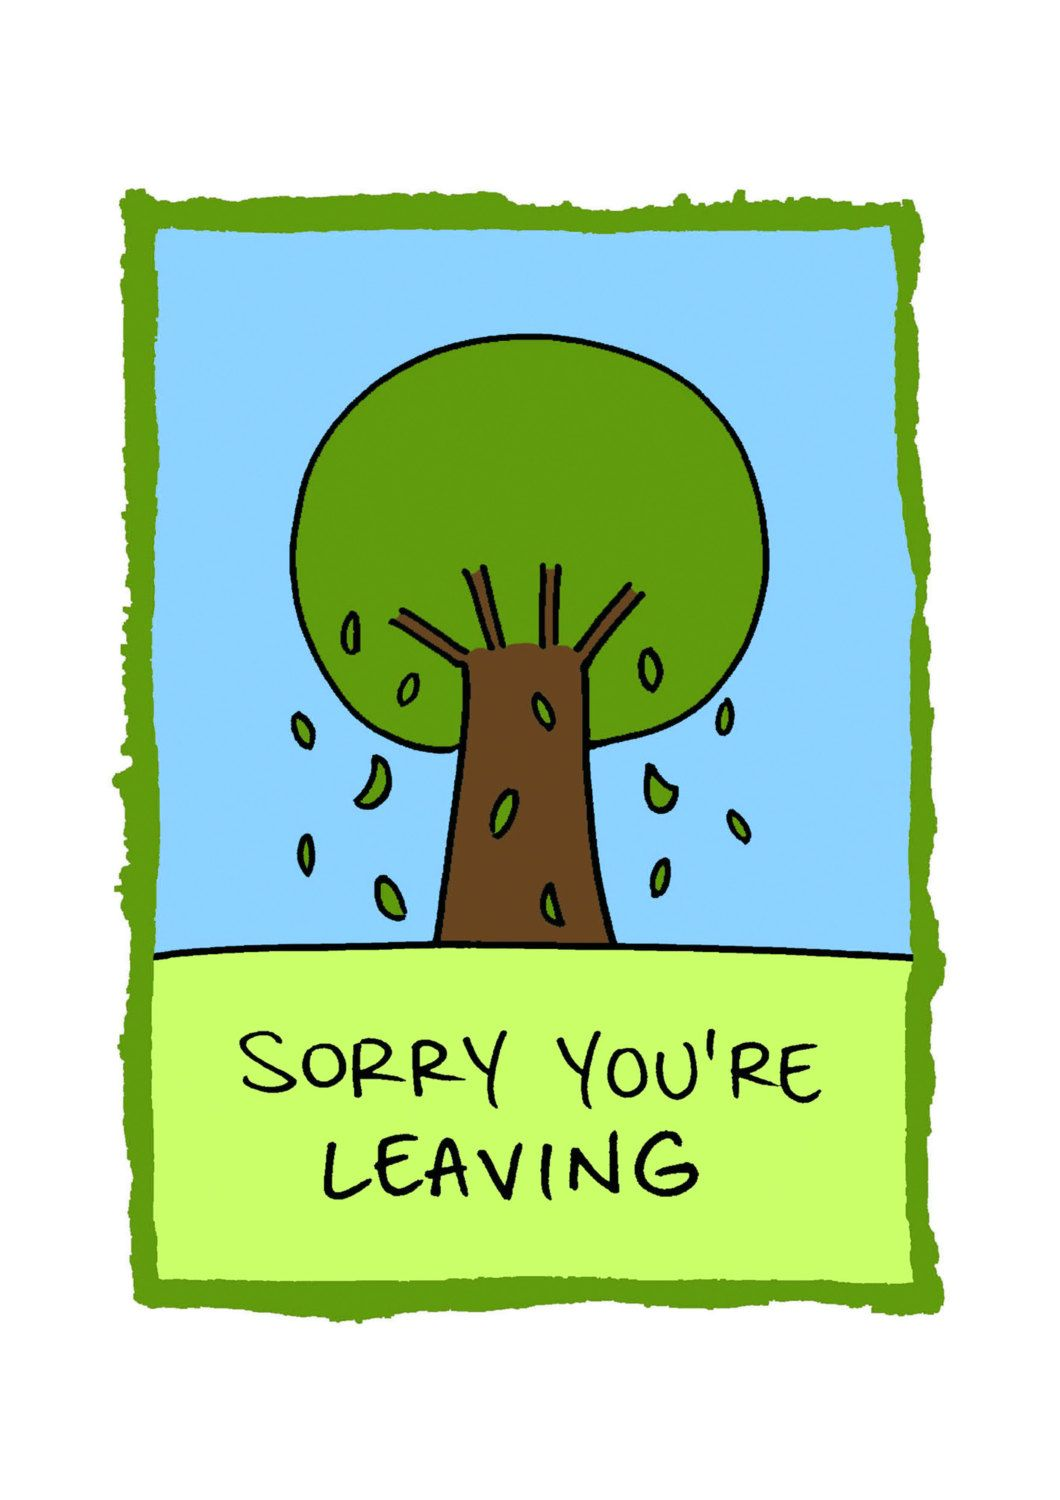 28 Sorry You Re Leaving Card Template Sorry You Re Within Sorry You Re Leaving Card Template Busin Card Template Leaving Cards Visiting Card Templates